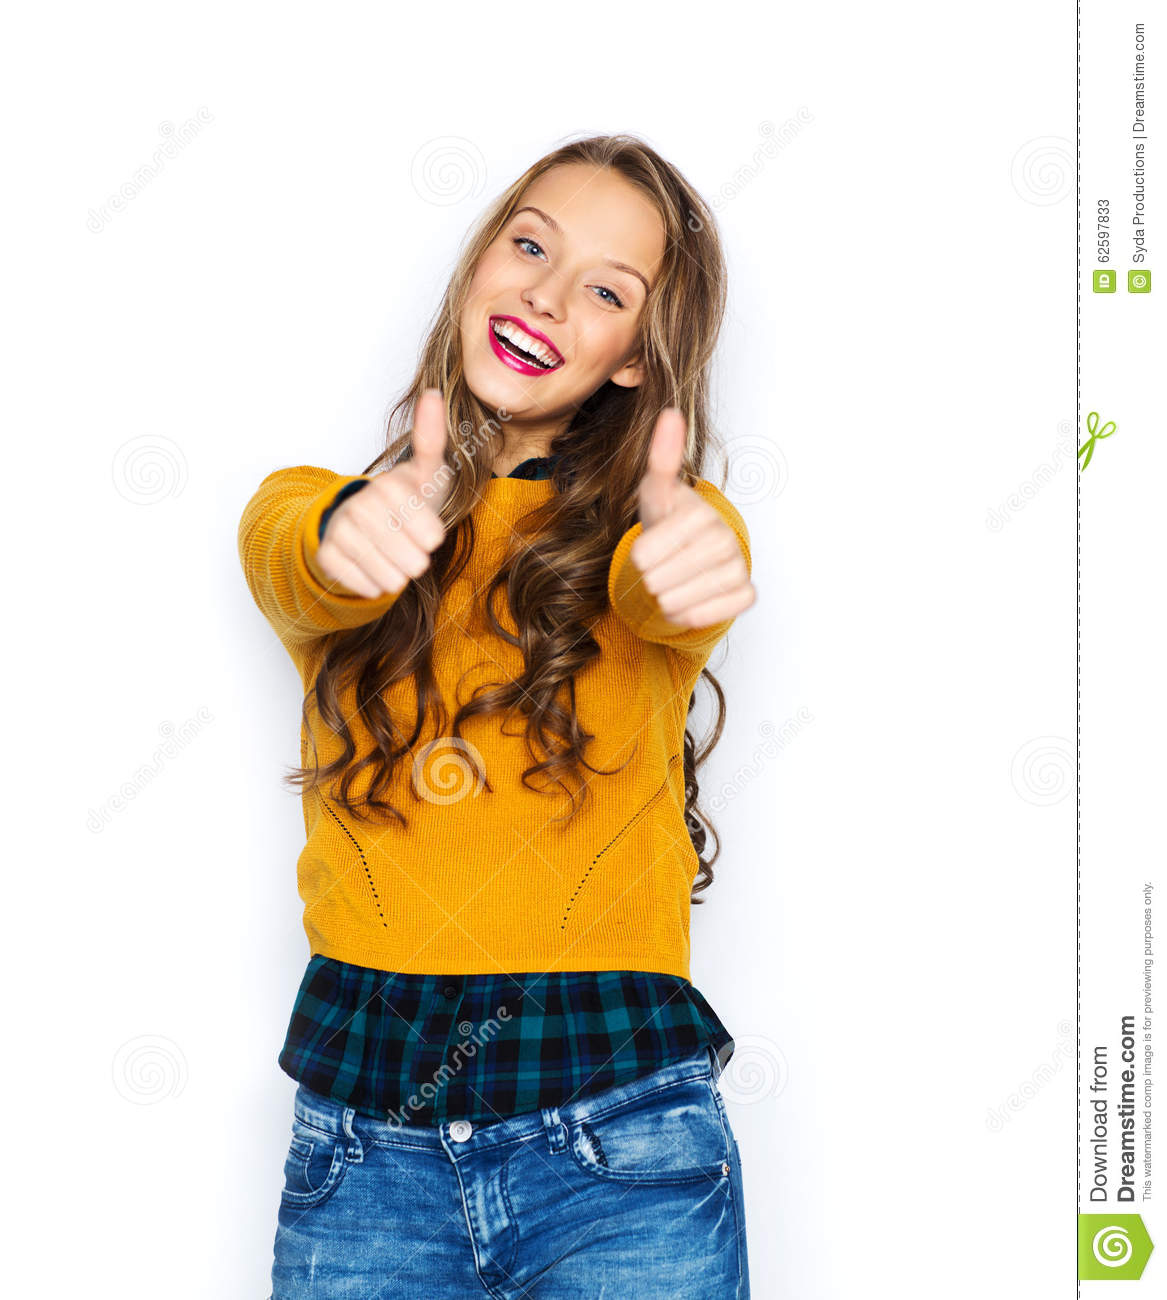 Adolescent Stock Photos Royalty Free Adolescent